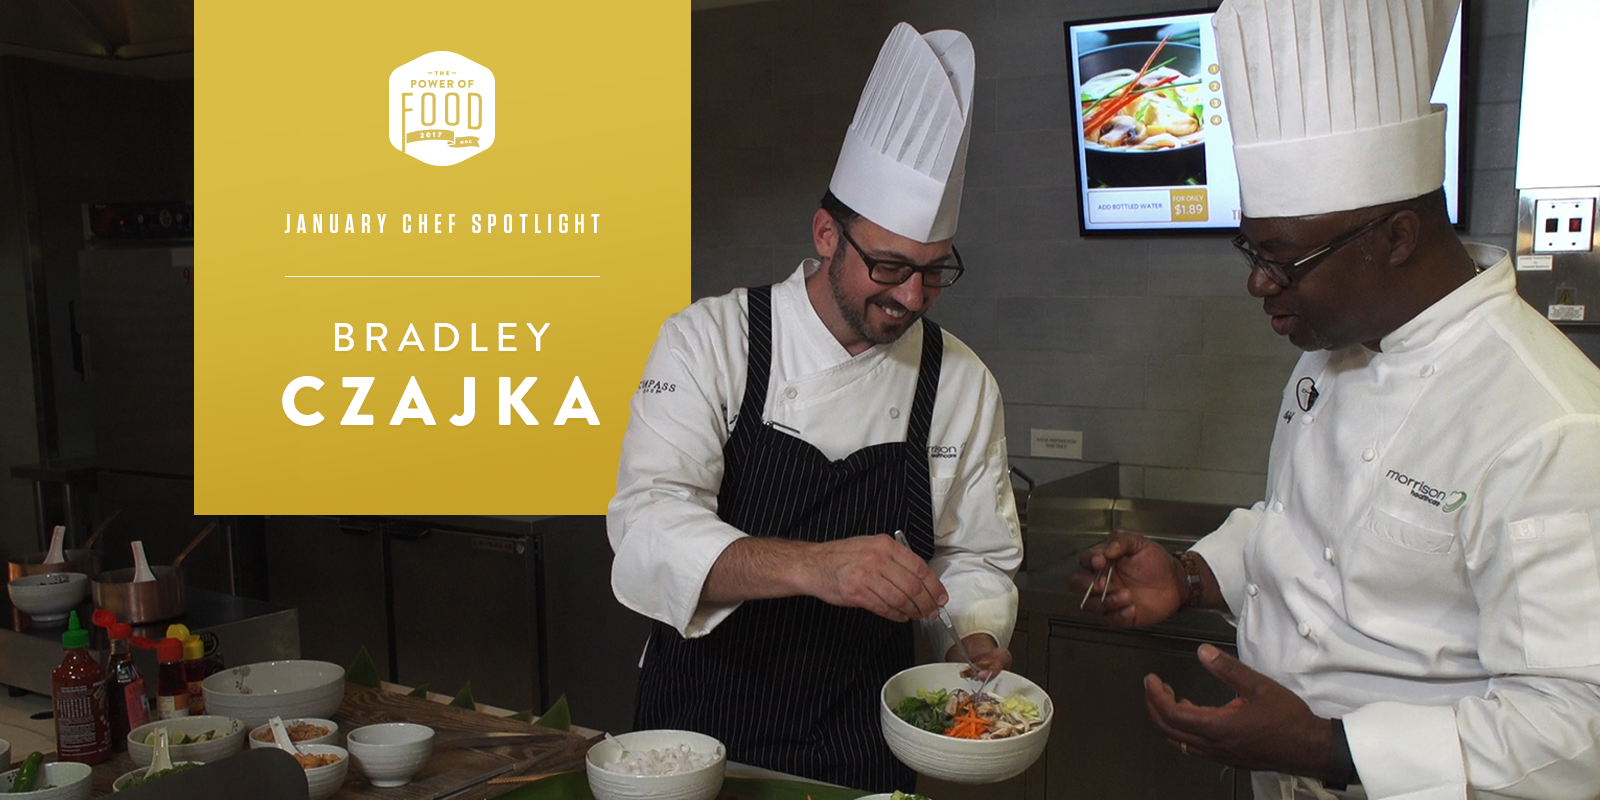 Chef Bradley Czajka is the Systems Executive Chef and a valued member of the Food and Nutrition Service team at Children's Healthcare of Atlanta.